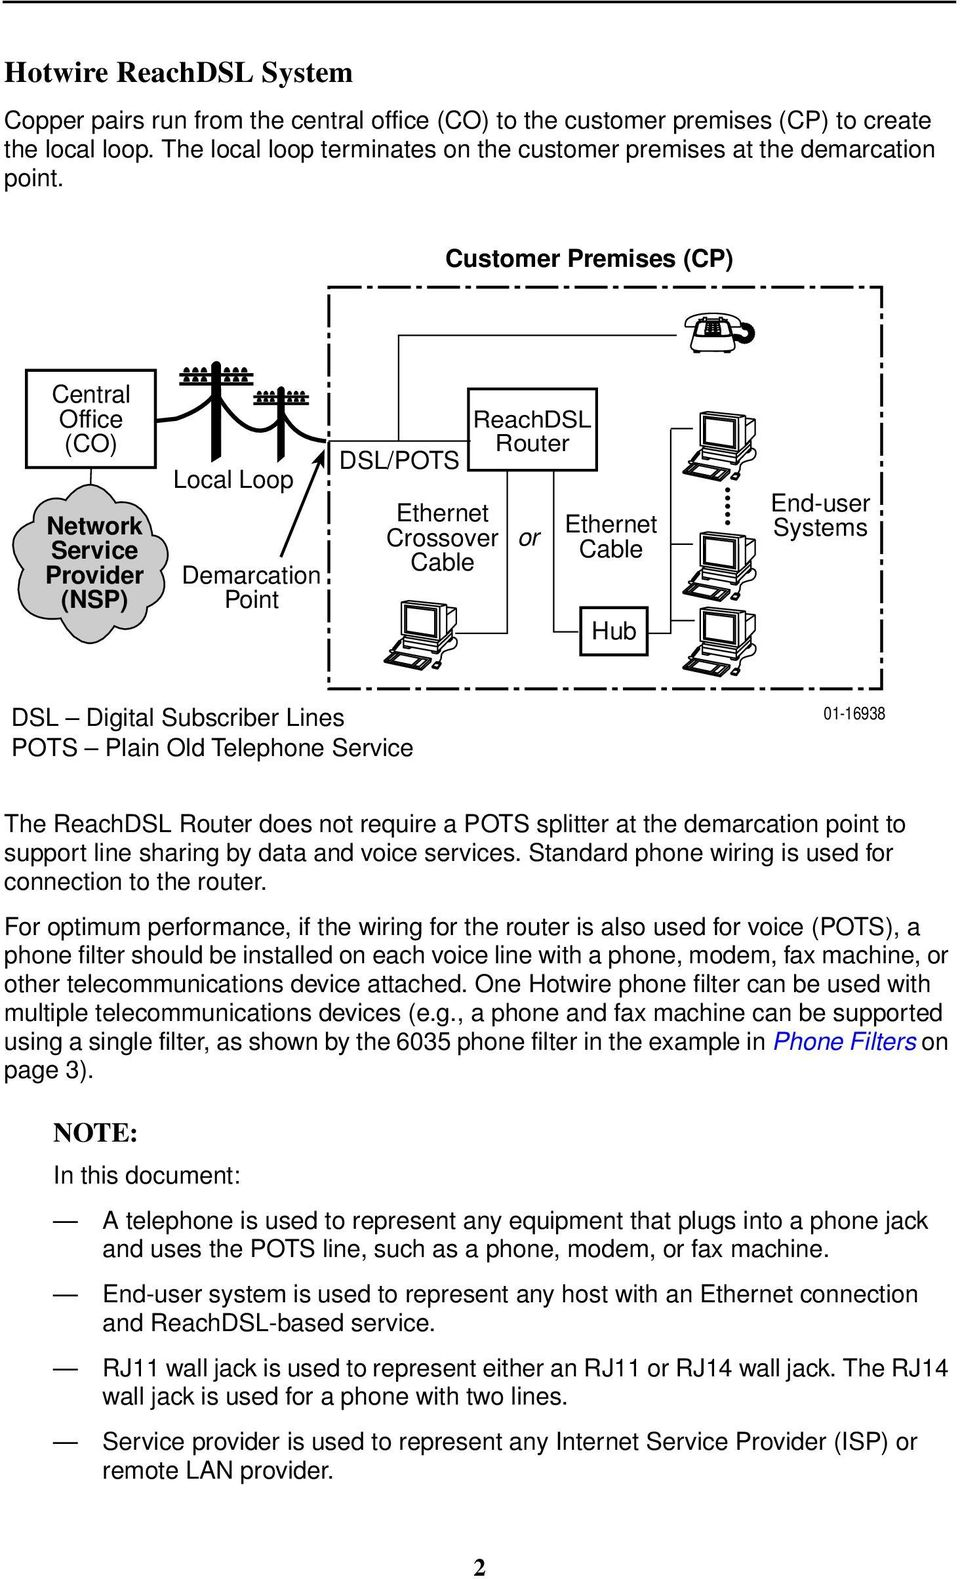 Hotwire 6351 Reachdsl Router Overview Pdf Cable Diagram In Addition Phone Ether Wall Jack Wiring On Cat5e Customer Premises Cp Central Office Co Network Service Provider Nsp